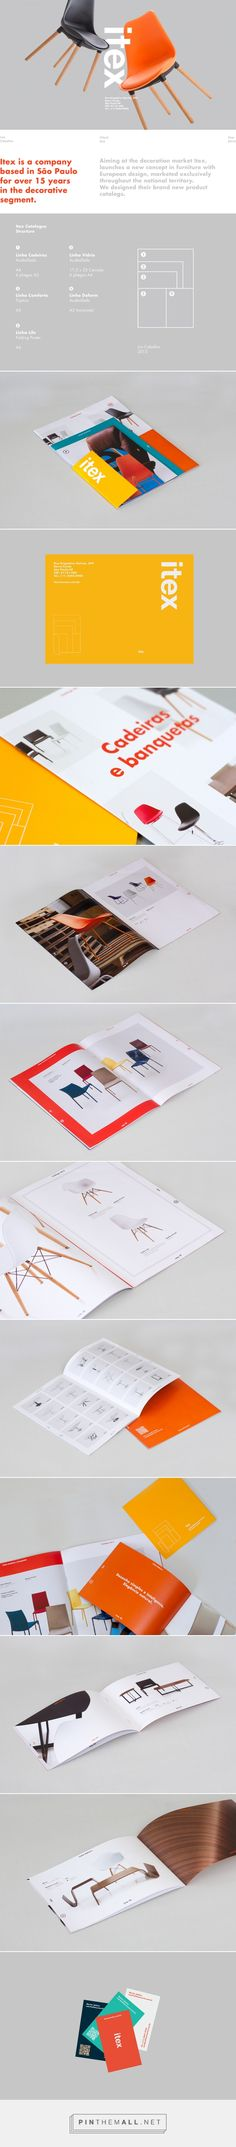 Itex™ - Furniture Catalogue on Behance. - a grouped images picture - Pin Them All (Furniture Designs Poster) Pallet Furniture Shelves, Deck Furniture, Smart Furniture, Types Of Furniture, Furniture Logo, Steel Furniture, Refurbished Furniture, Furniture For Small Spaces, Living Furniture